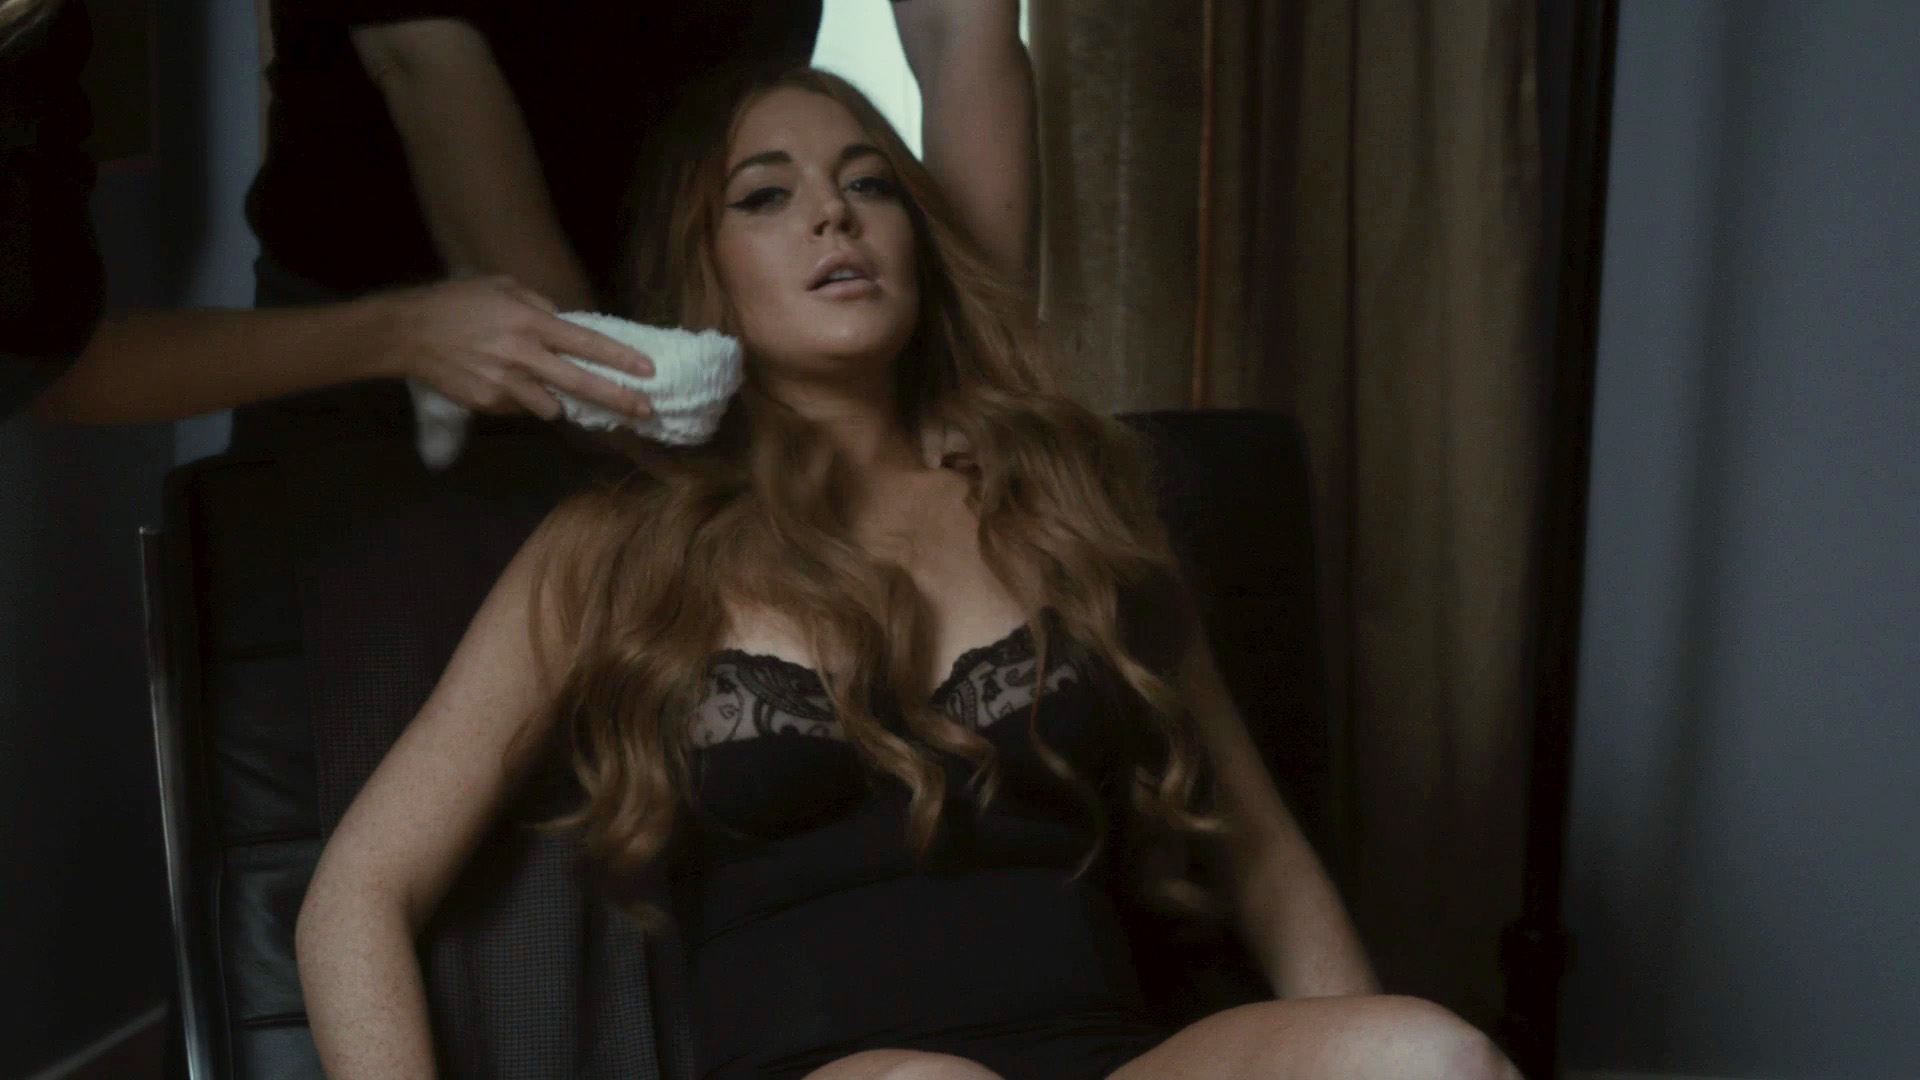 Lindsay heather flash sex animation lohan